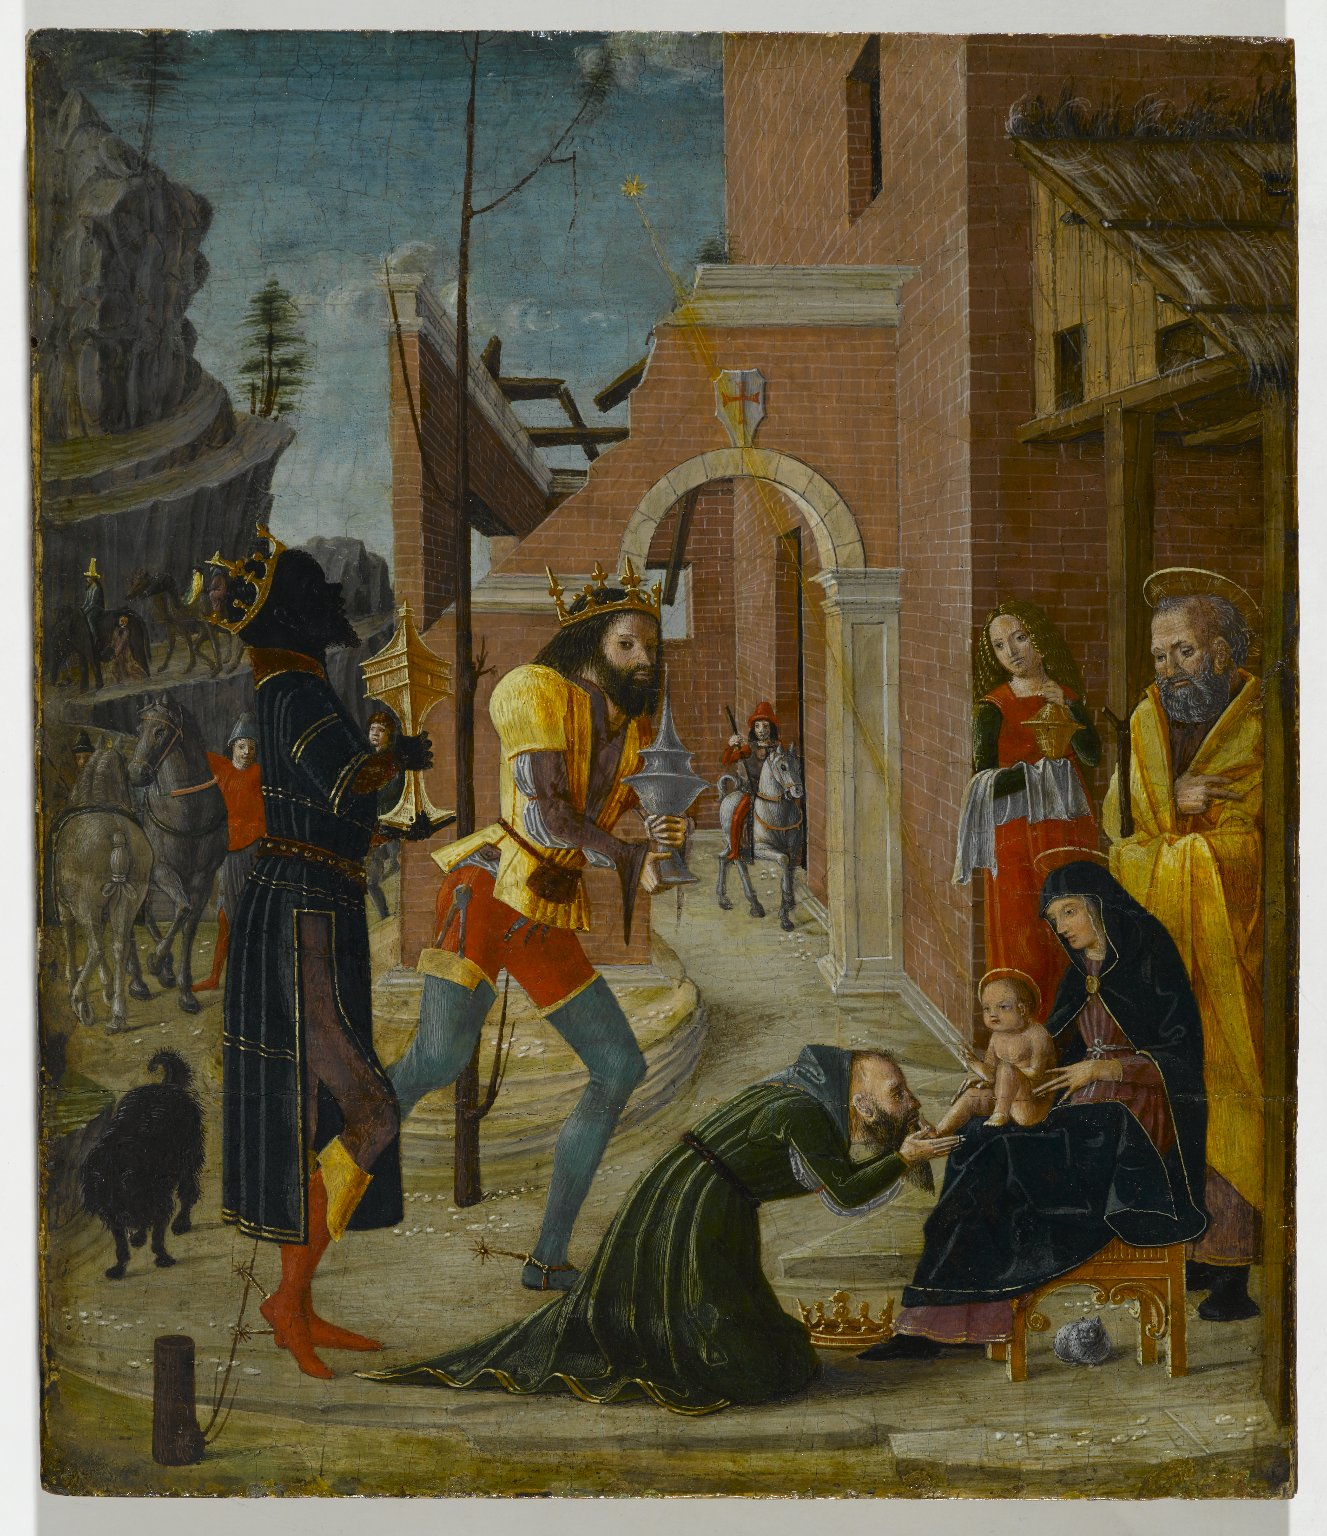 Brooklyn Museum: The Adoration of the Magi